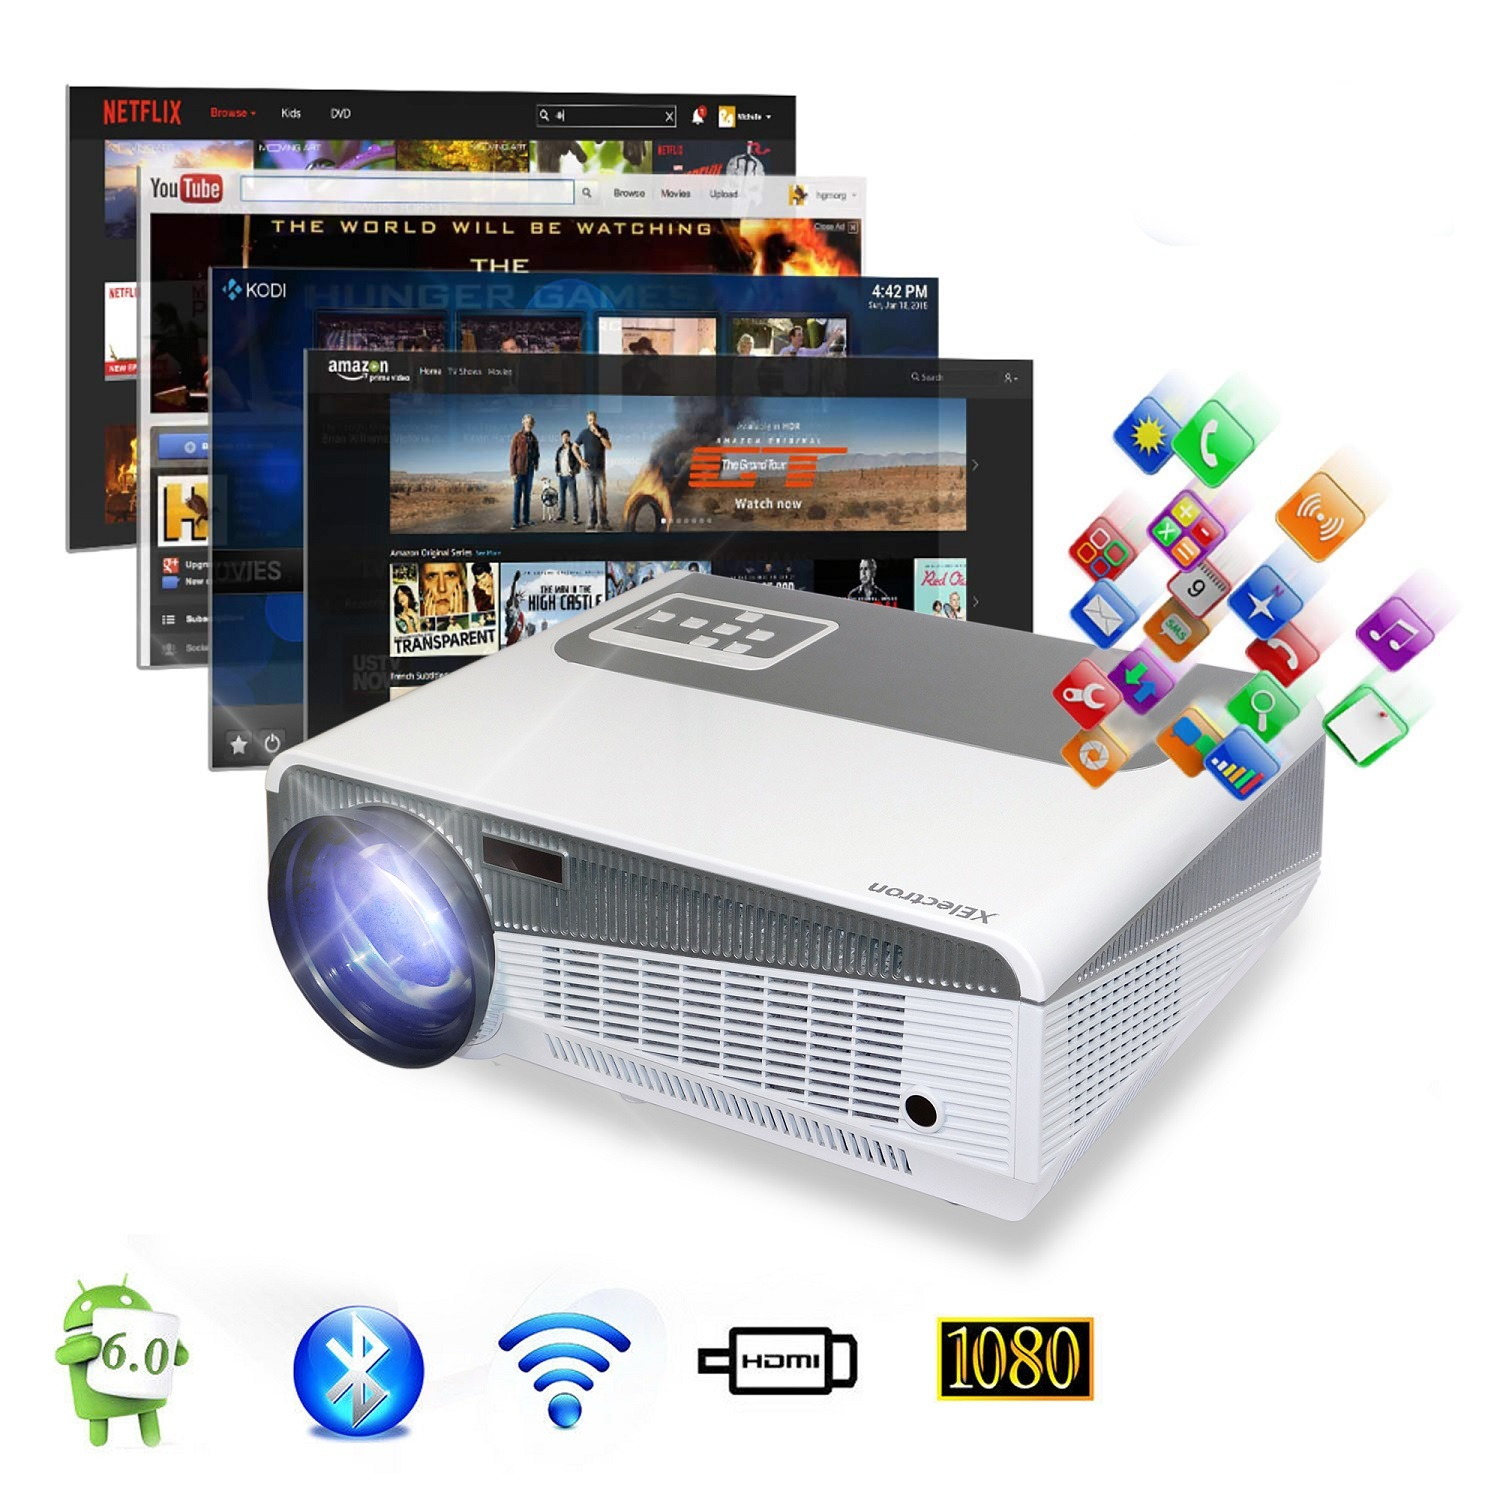 SM86+W Android Smart Wi-Fi HD LED Projector with 5000 Lumens 1080P, 4K Support